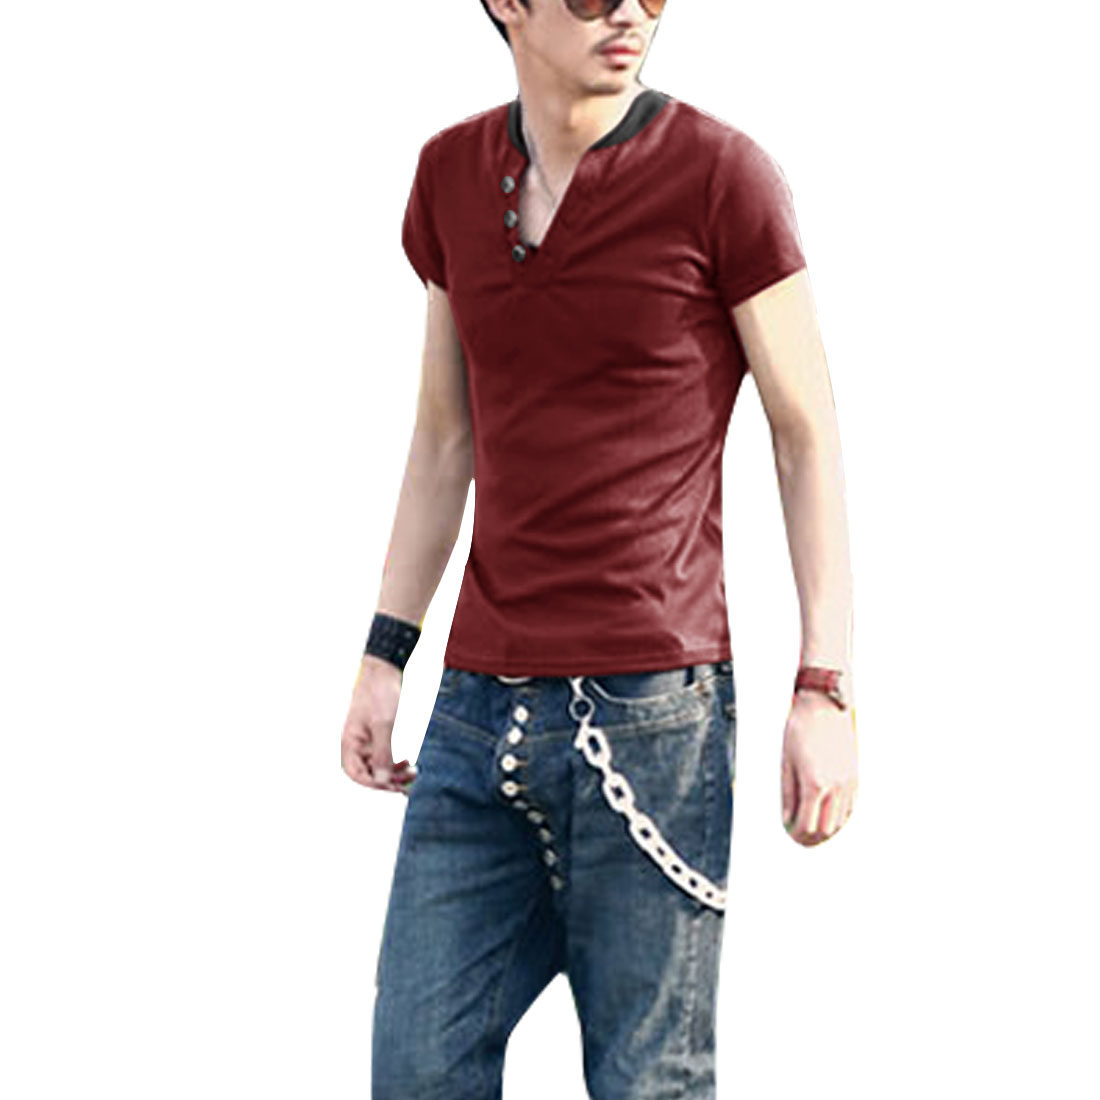 Man Contrast Color Splice V Neck Stylish Tops Shirt Burgundy M